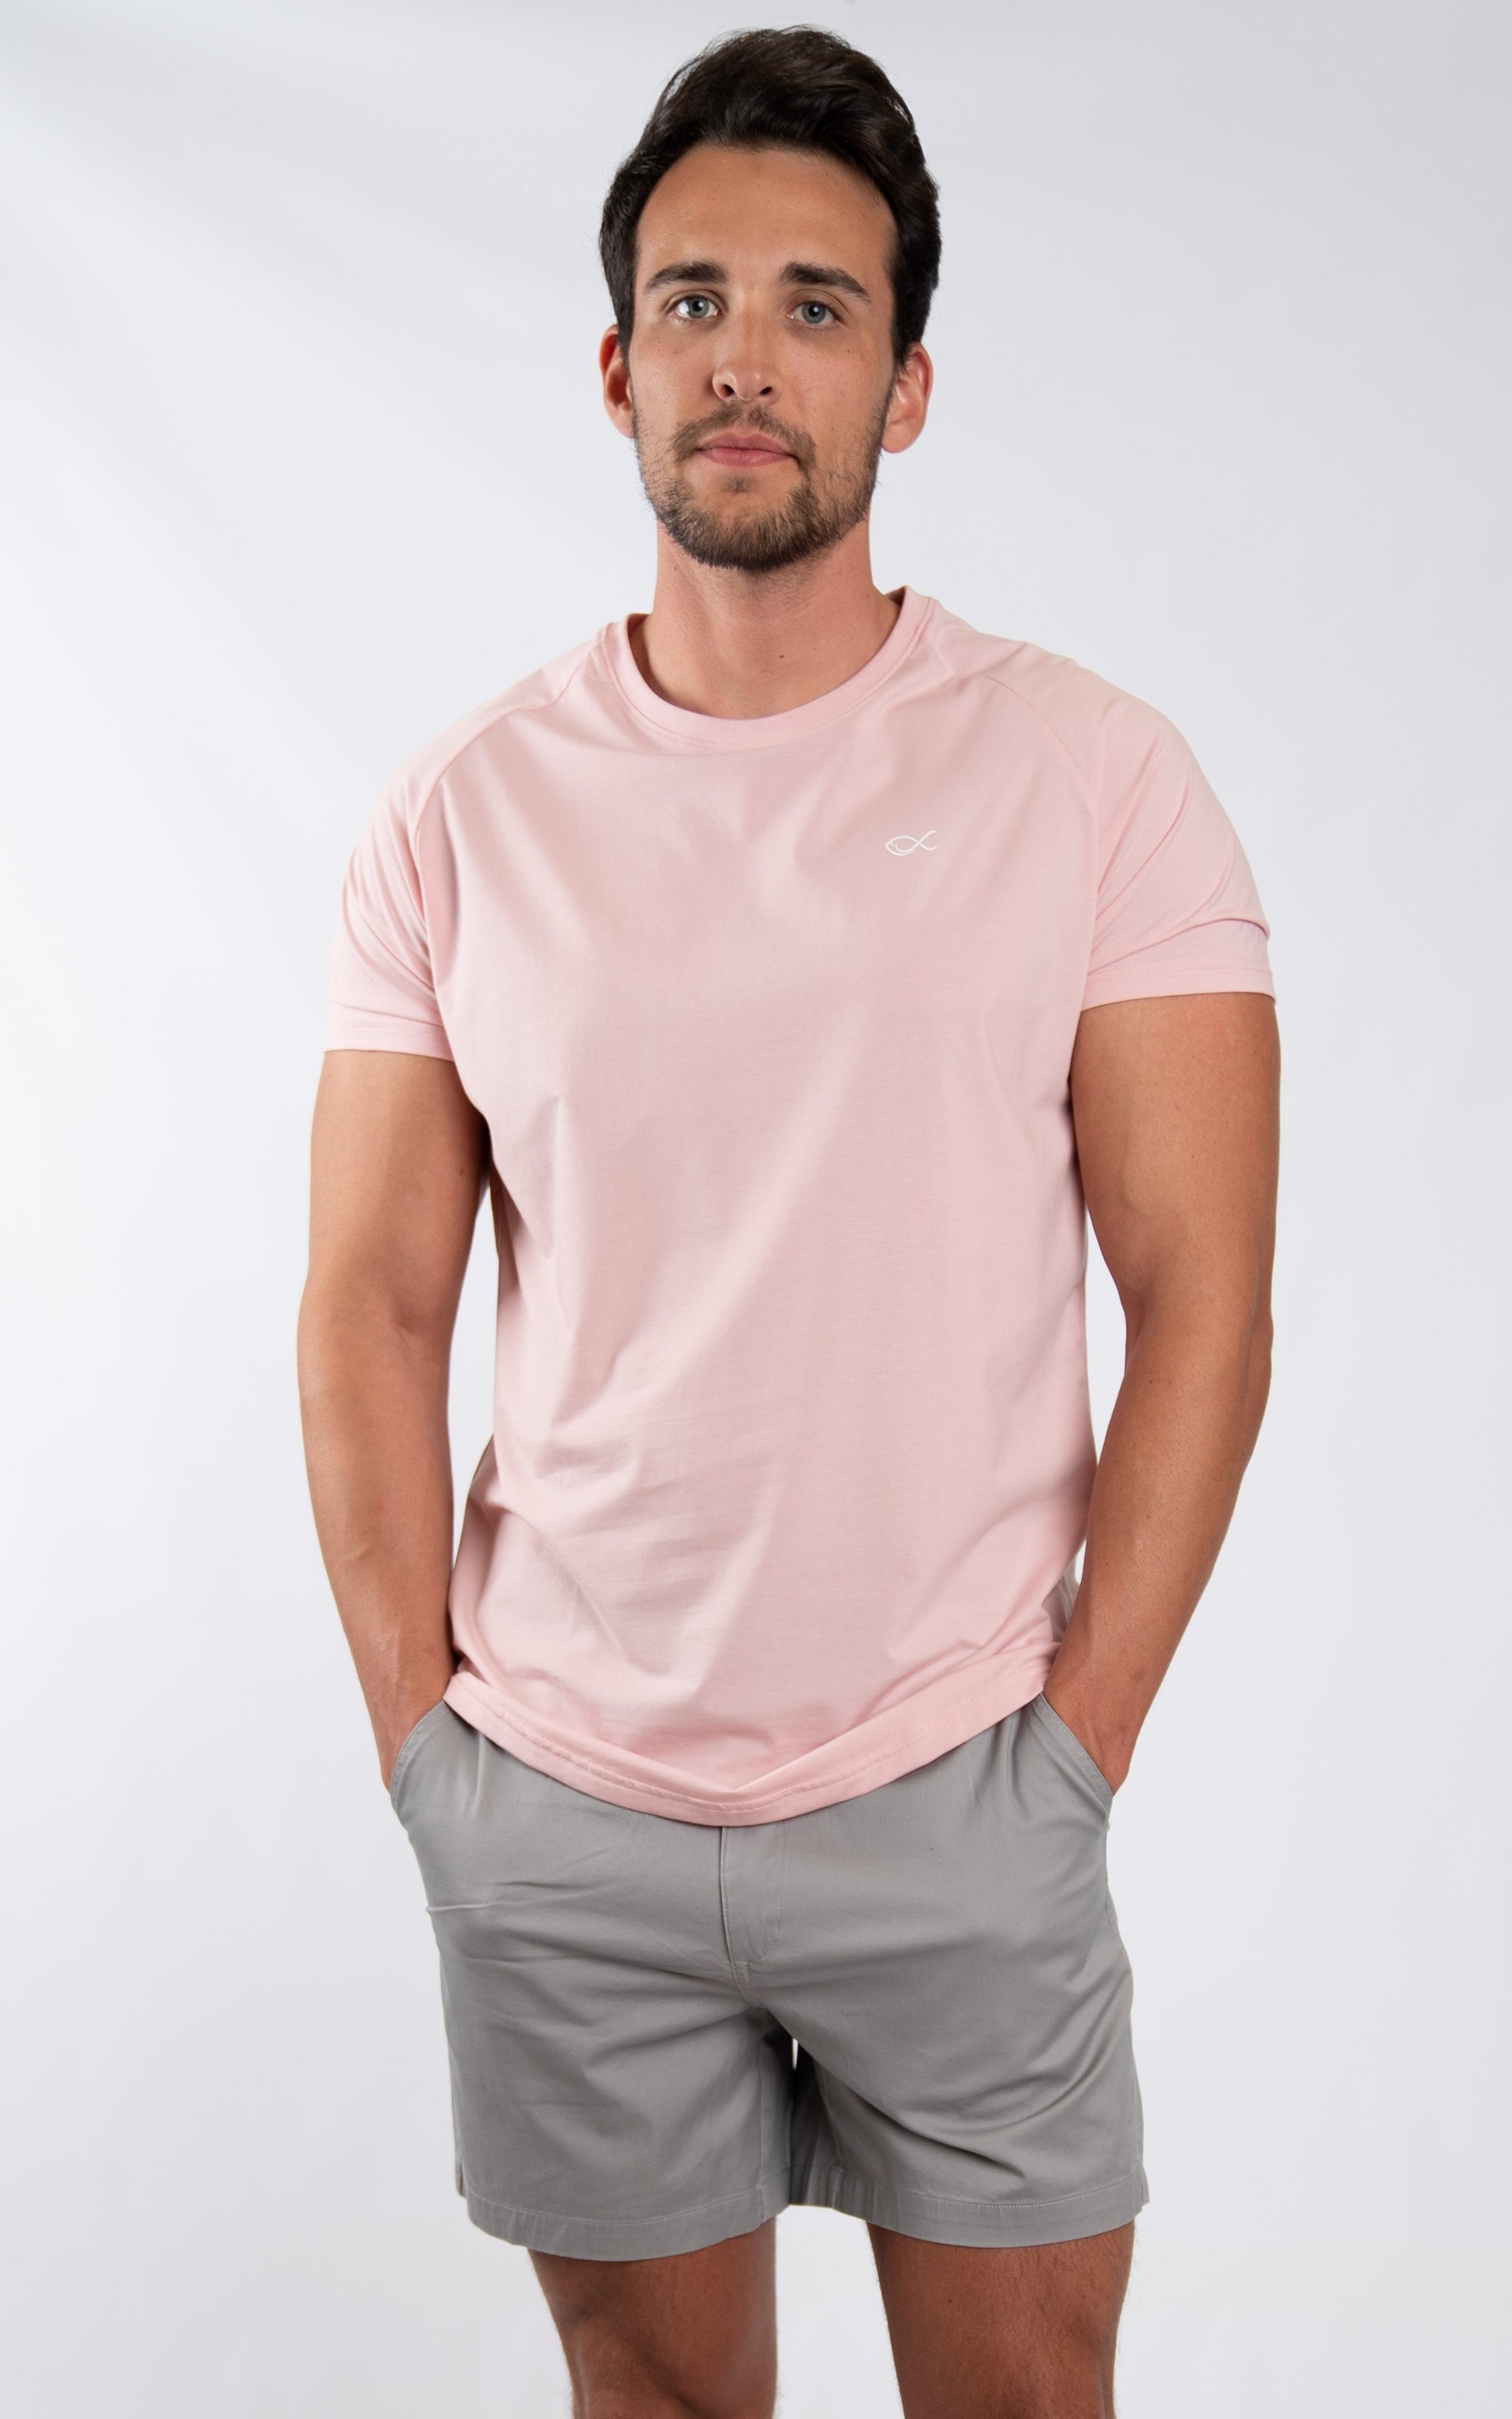 Men's Comfort Tee in Potpourri Pink - Southern Athletica